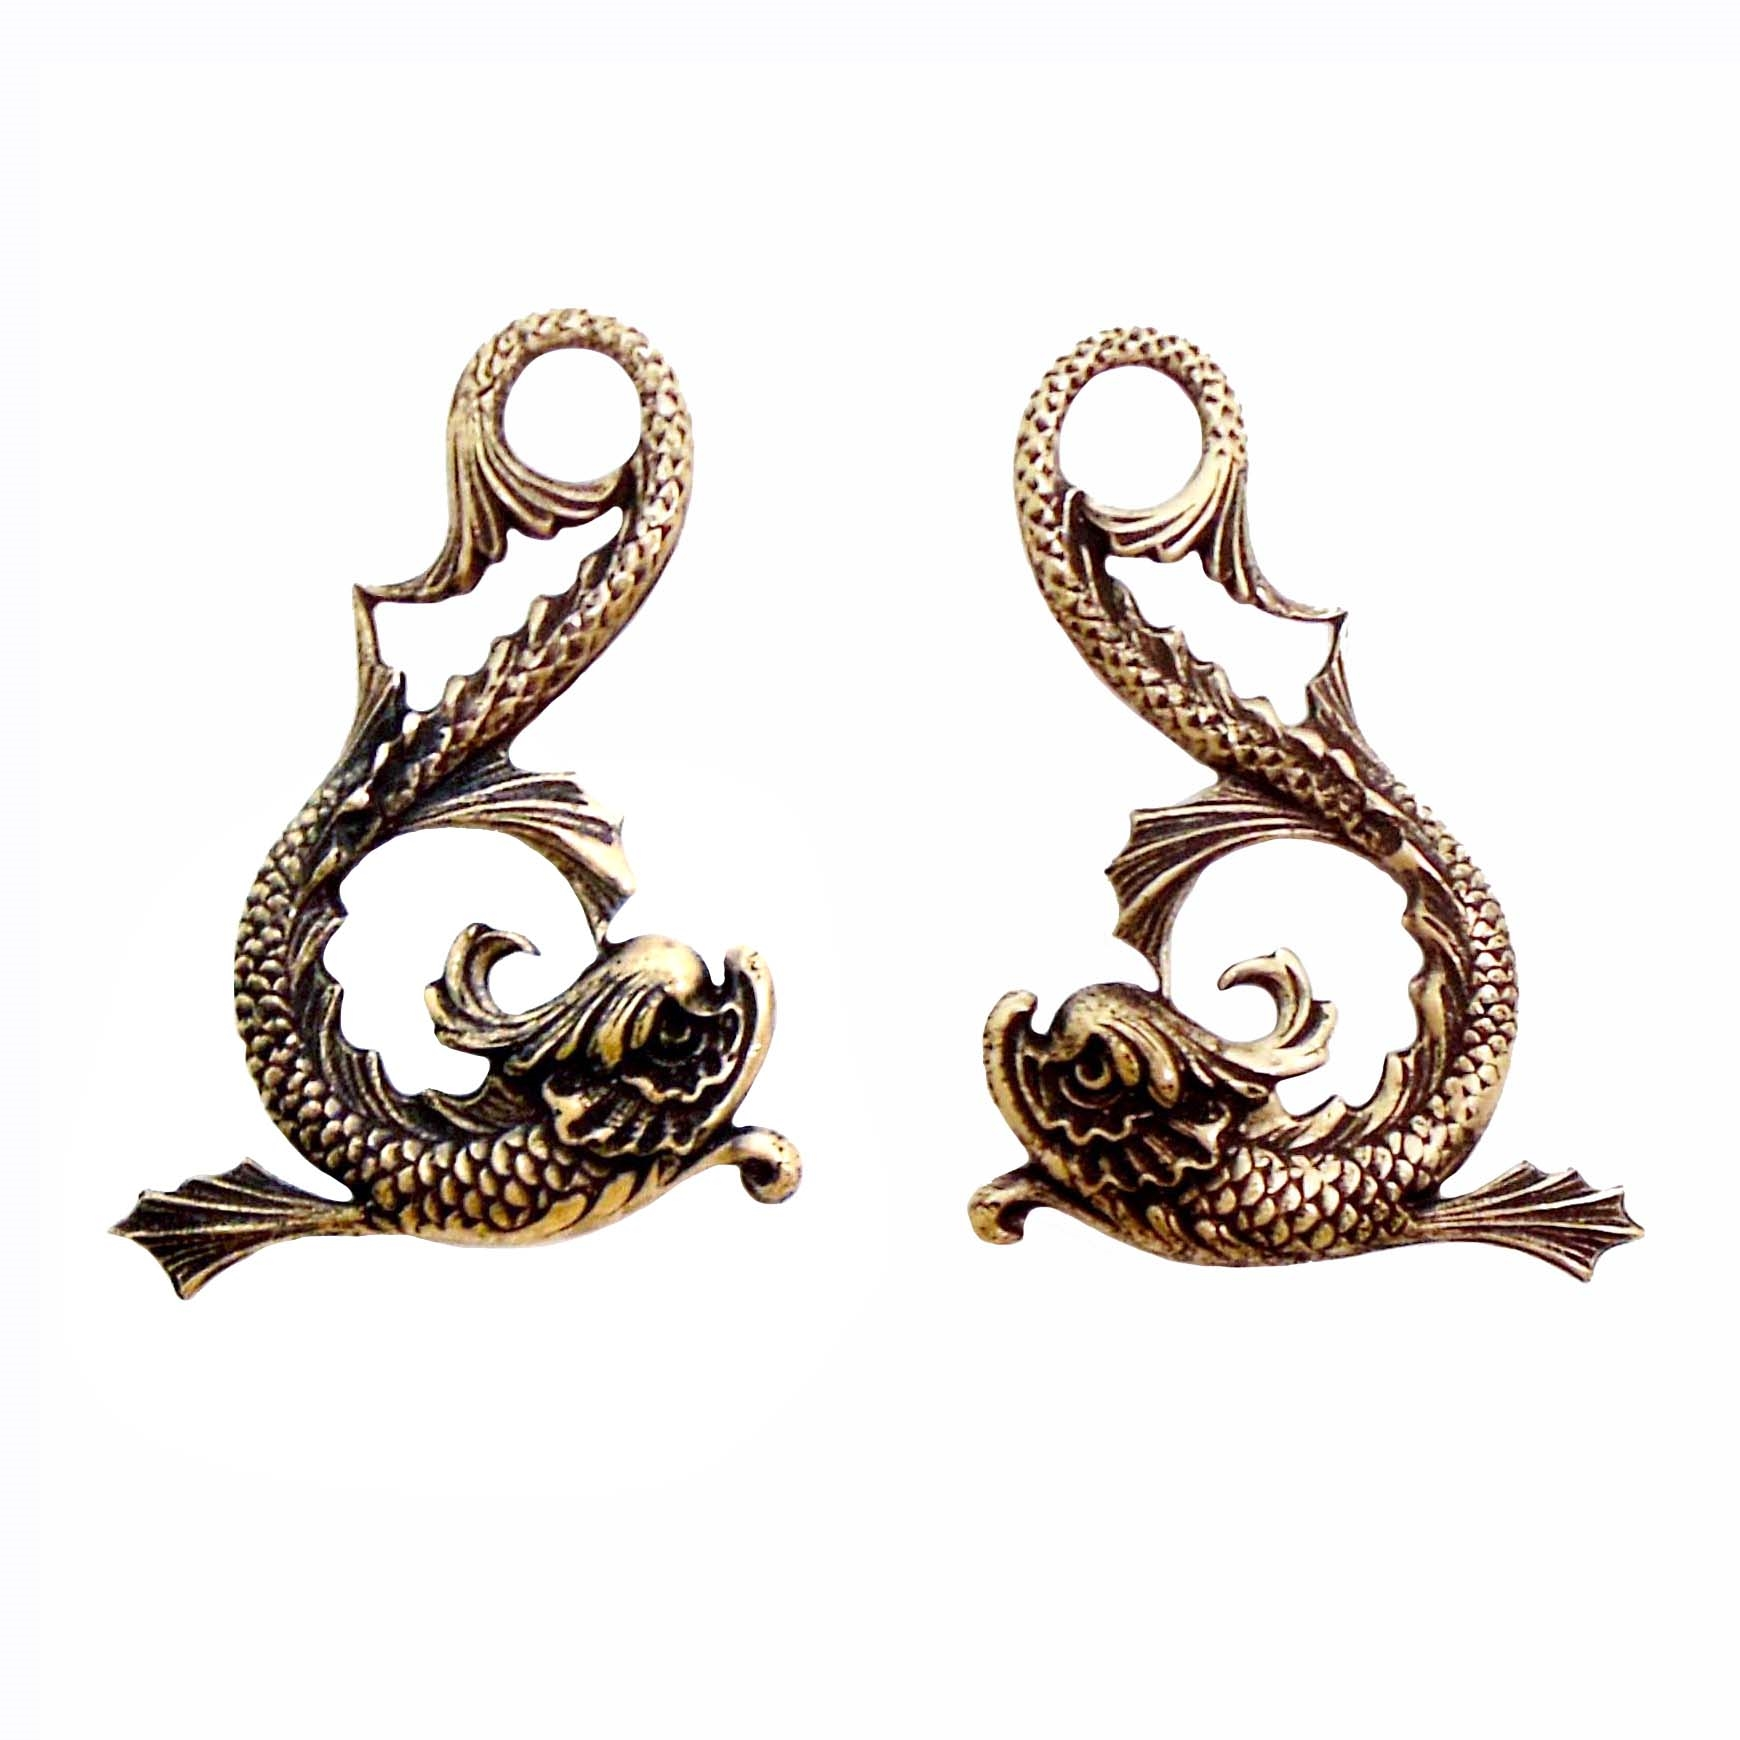 Fish Stamping, Serpents, Fish Pairs, Serpent Stamping, Brass Ox, Brass Stamping, Art Nouveau, Fish, Brass Serpent, Looped Tail, 42 x 31mm, Nickel Free, Us Made, Jewelry Findings, Pendent, B'sue Boutiques, 01426